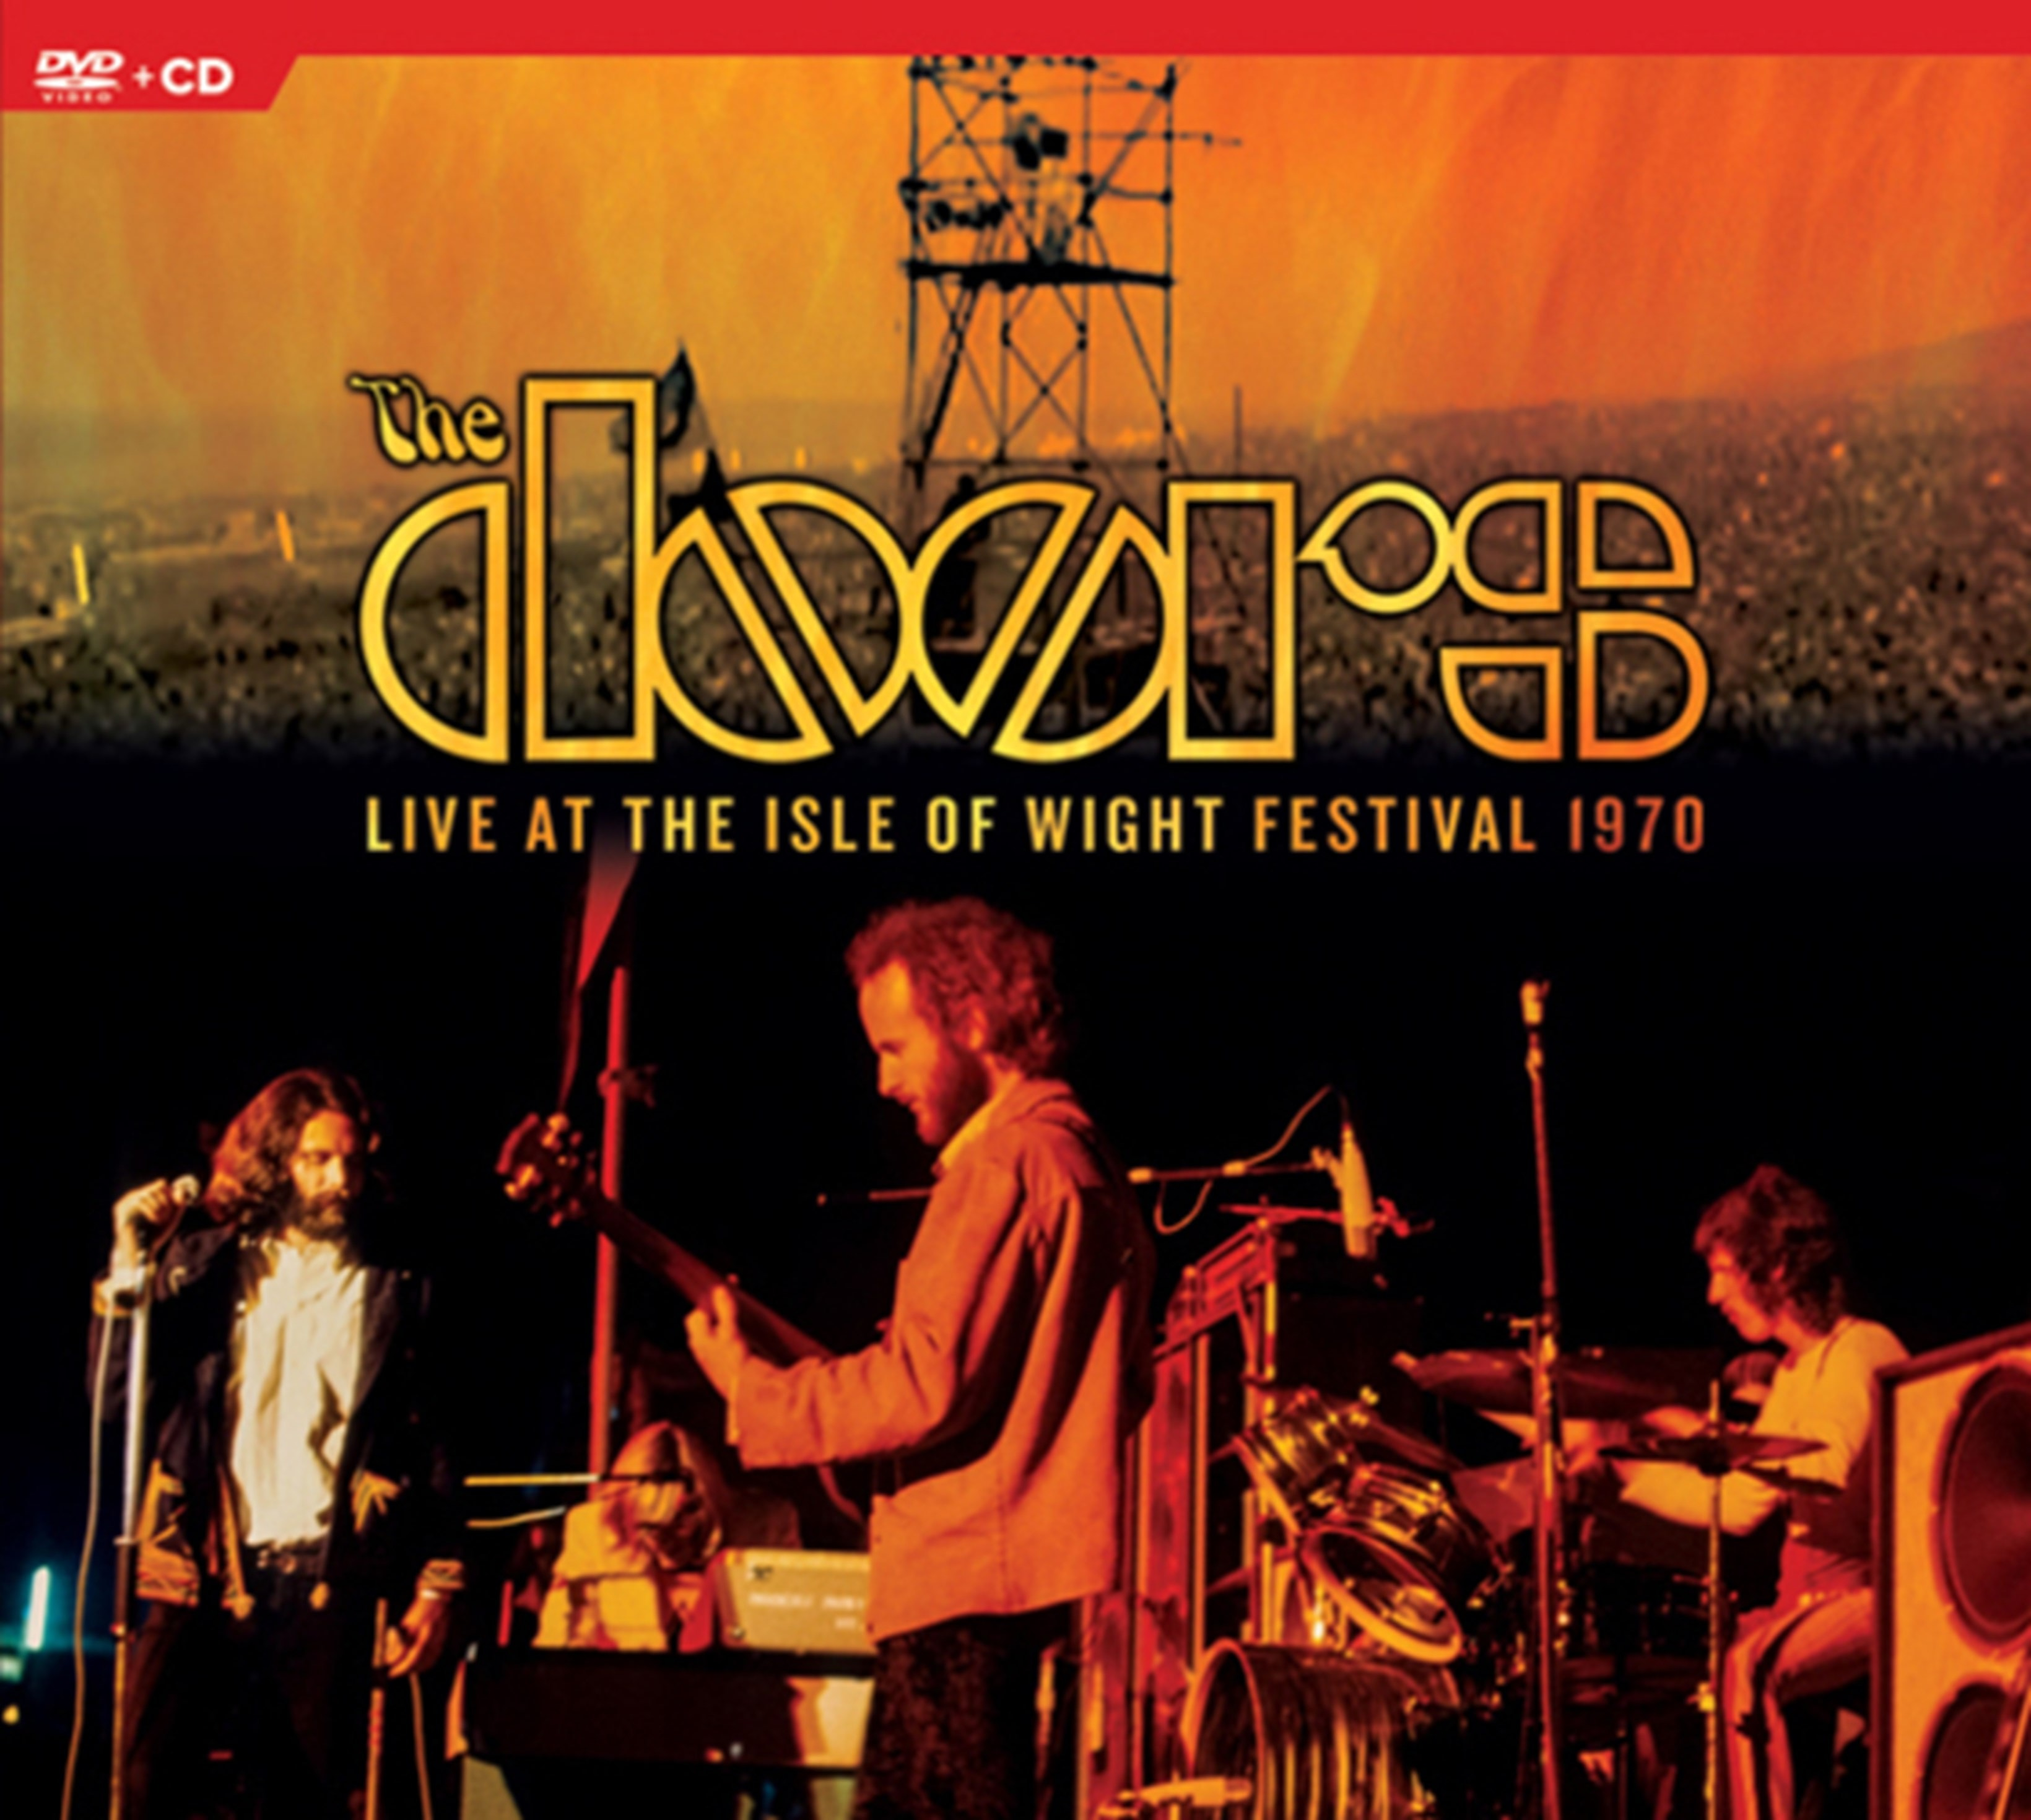 The Doors: Live at the Isle of Wight Festival - 1